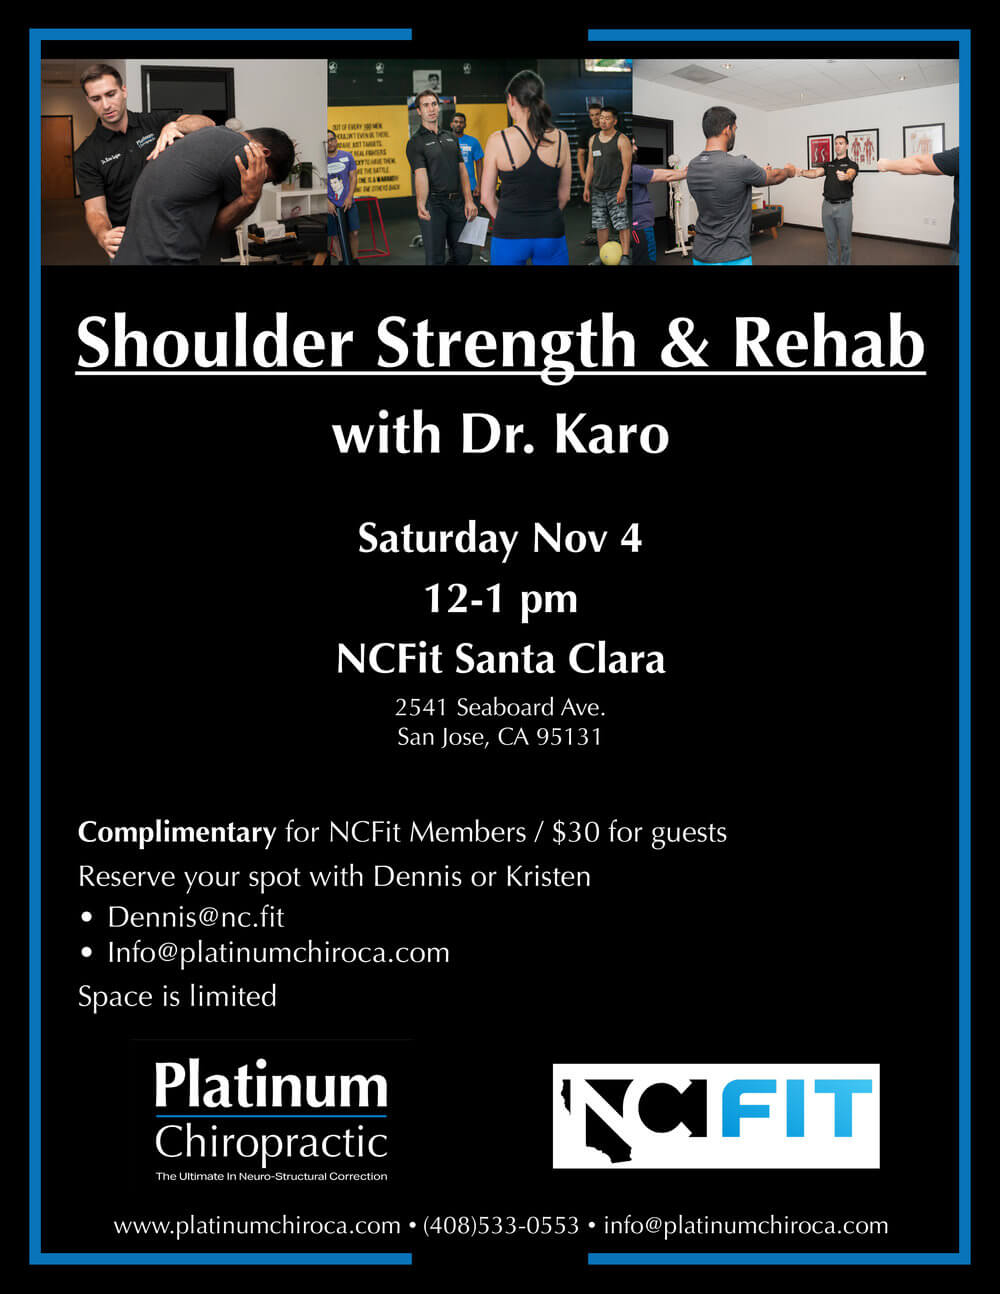 Sign up for Platinum Chiropractic's Shoulder Rehab & Strength Seminar at NCFit Santa Clara. The event is this Saturday November 4 from 12 - 1 pm.